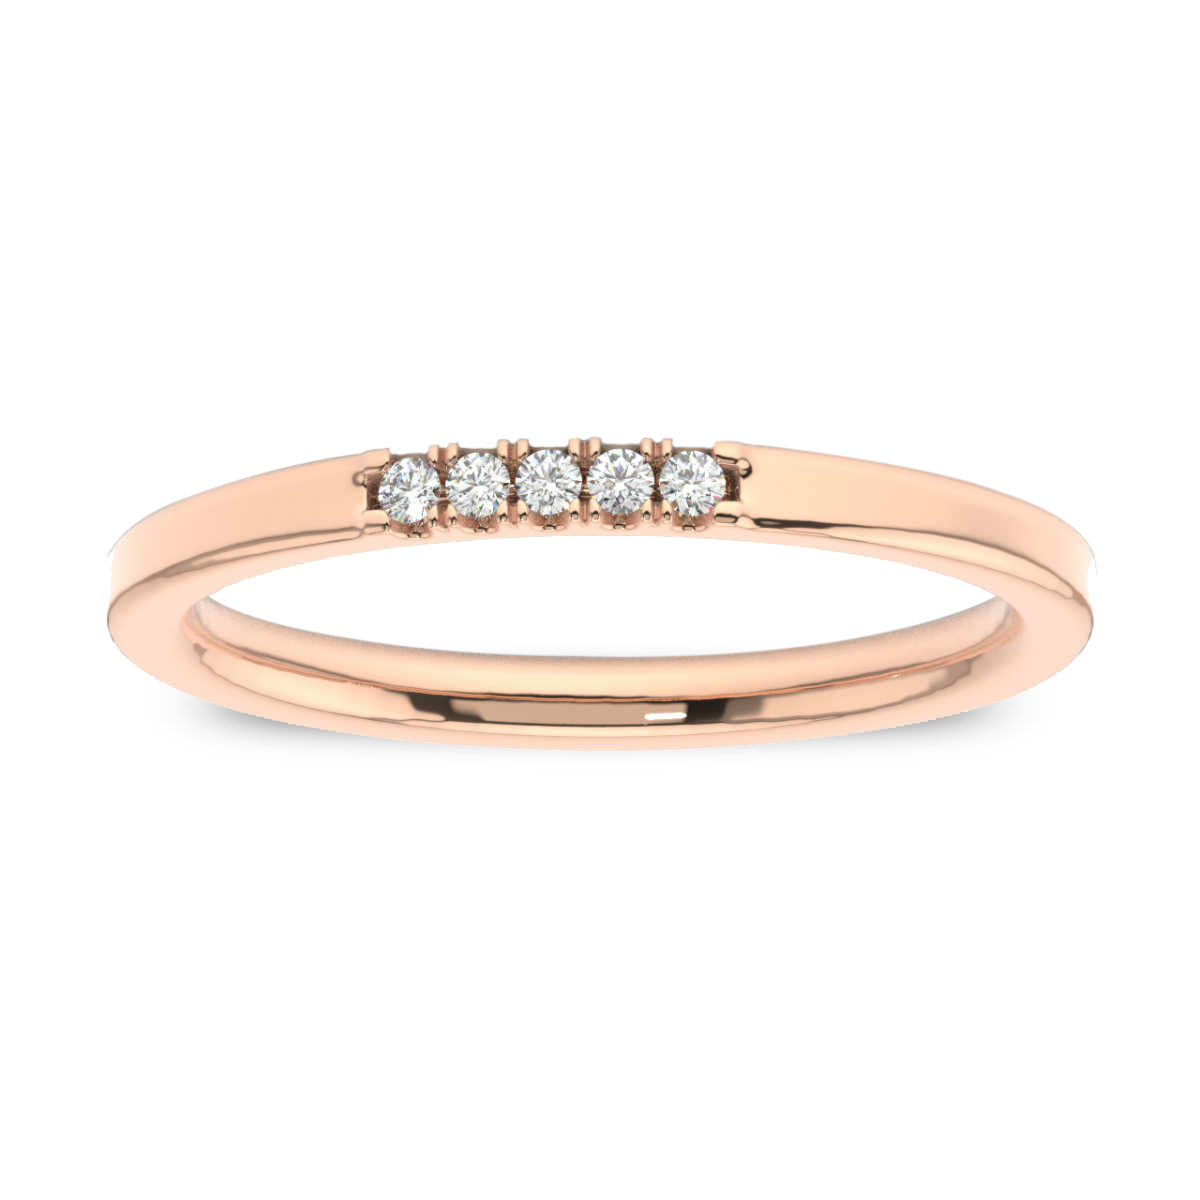 14K Rose Gold Gina Petite Stackable Diamond Ring (1/20 ct. tw)